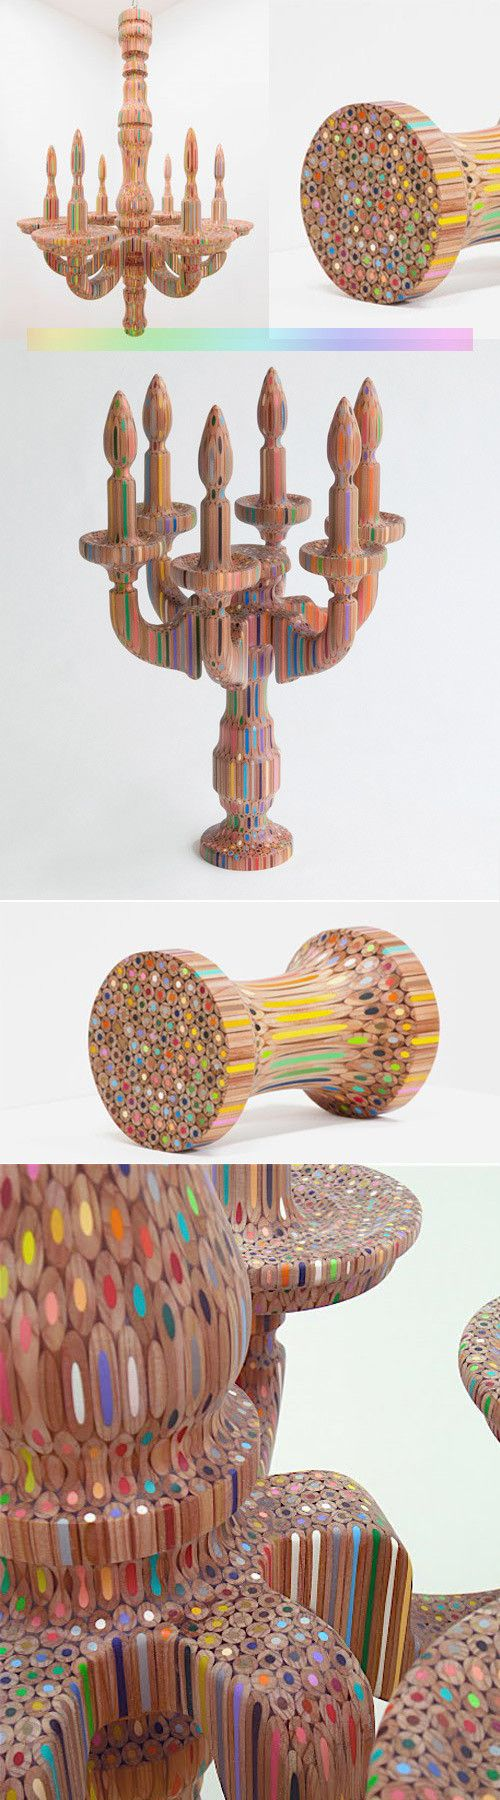 This artist carves pencils and creates these beautiful, modern candelabras and chandeliers.. I want one!